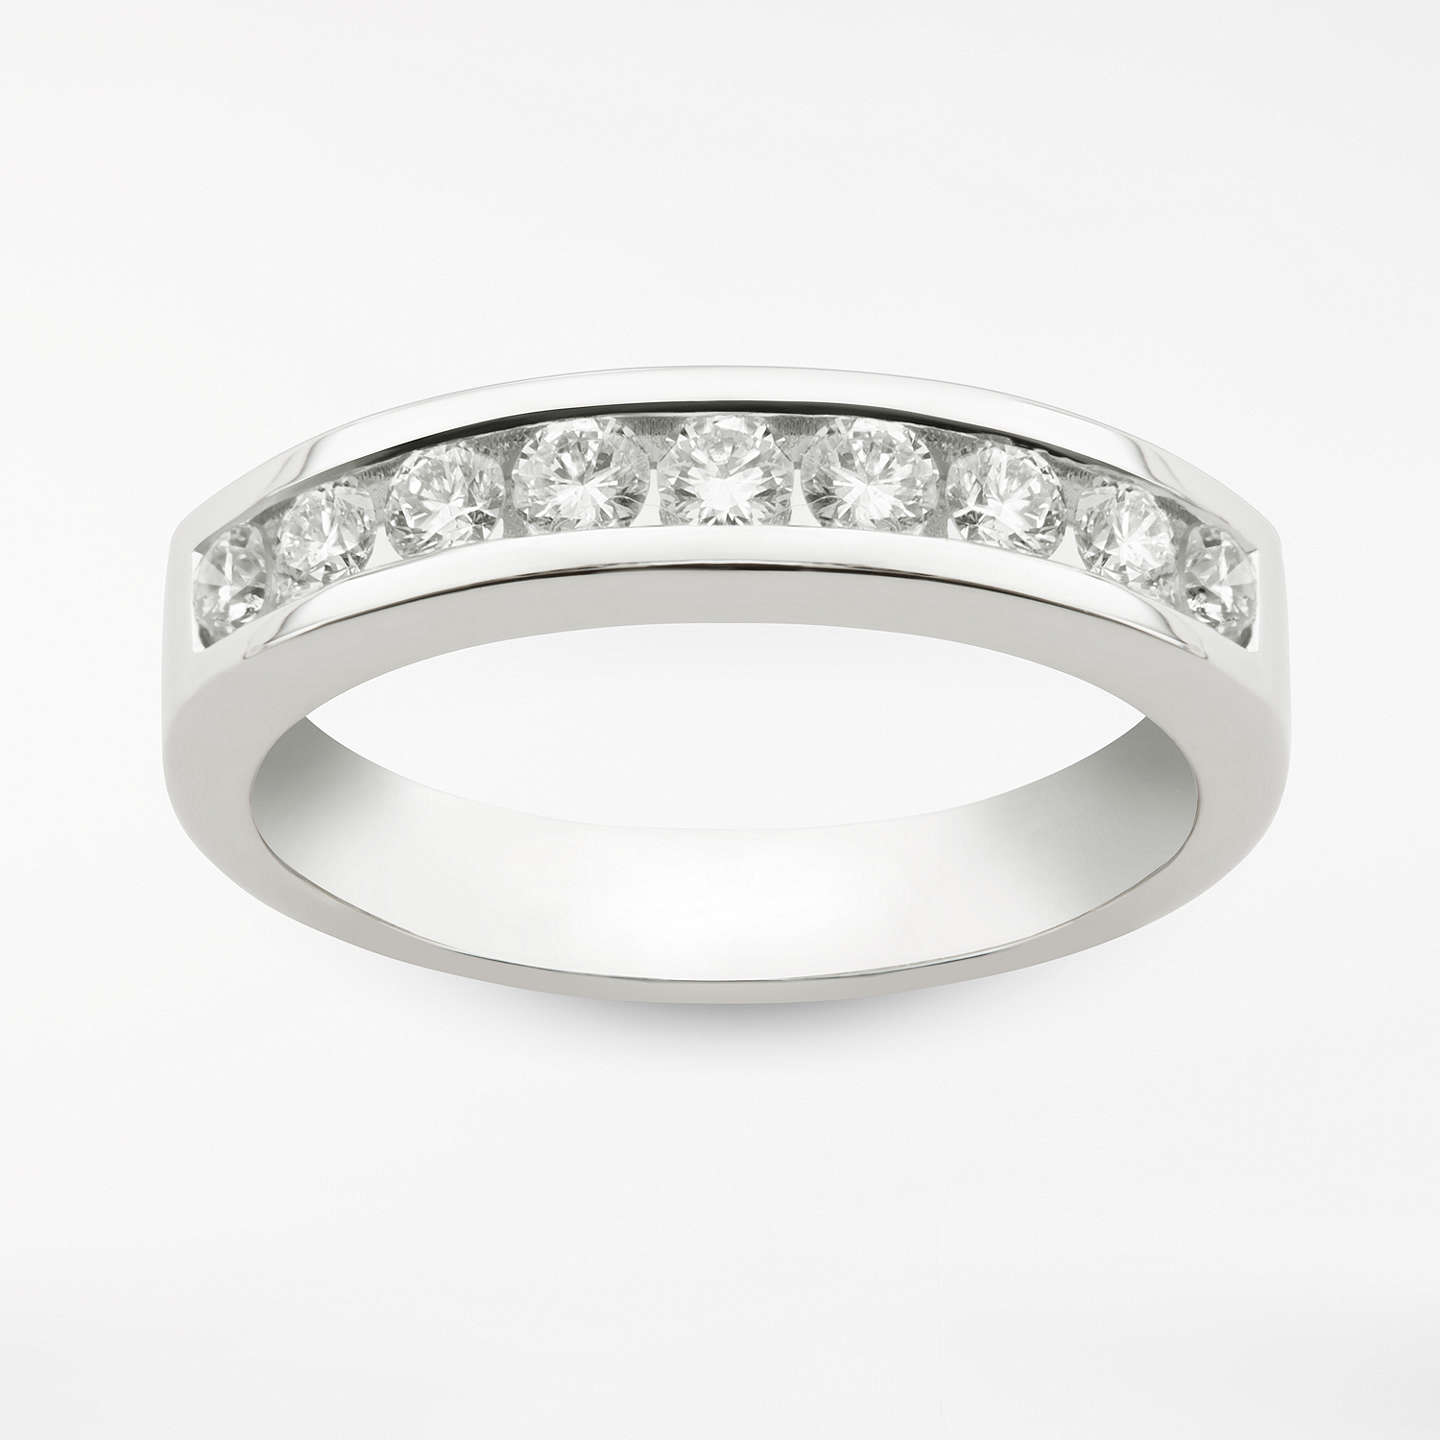 infinity qitok ic diamond set anniversary image white of channel pagespeed product dvjtoqbxsb ring gold